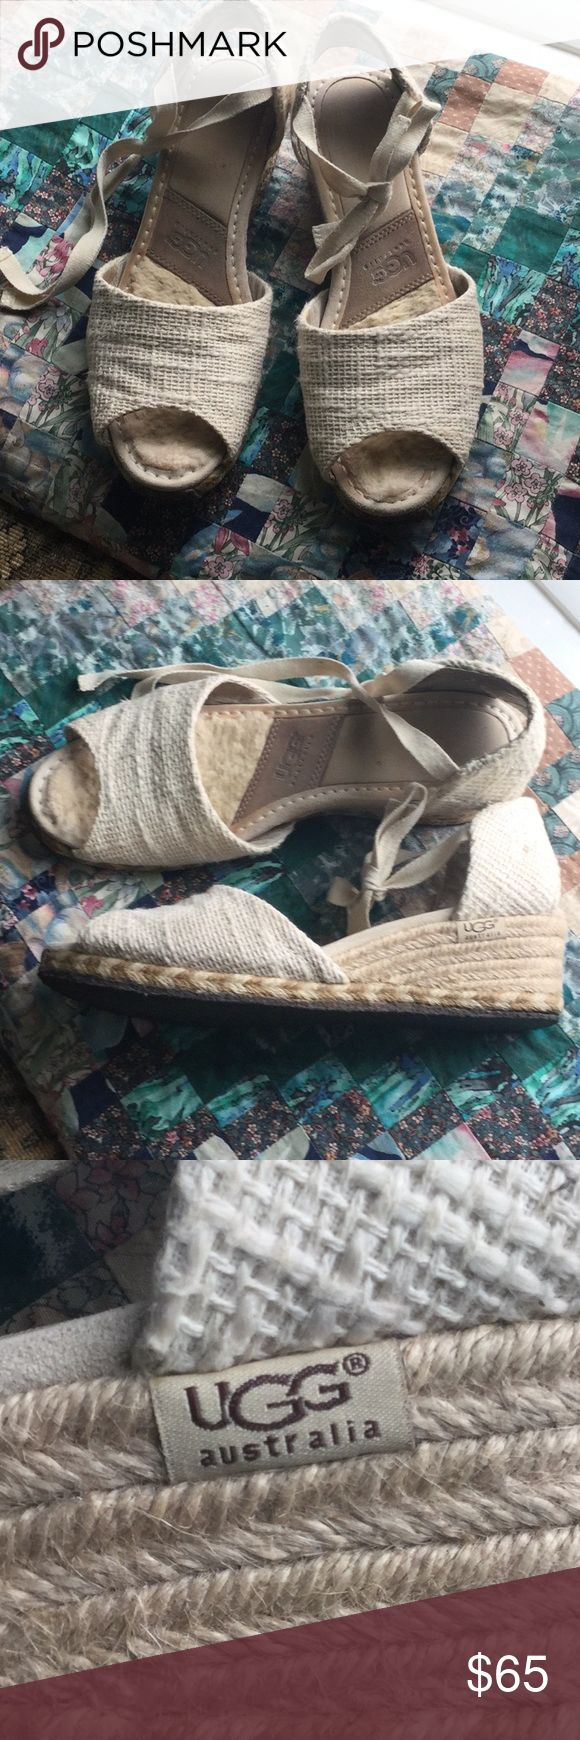 ✴️ UGG espadrilles ✴️ Adorable original UGG espadrilles in great condition. Super cute with jeans, dresses, skirts! Size 9. 2 inch heel. UGG Shoes Espadrilles